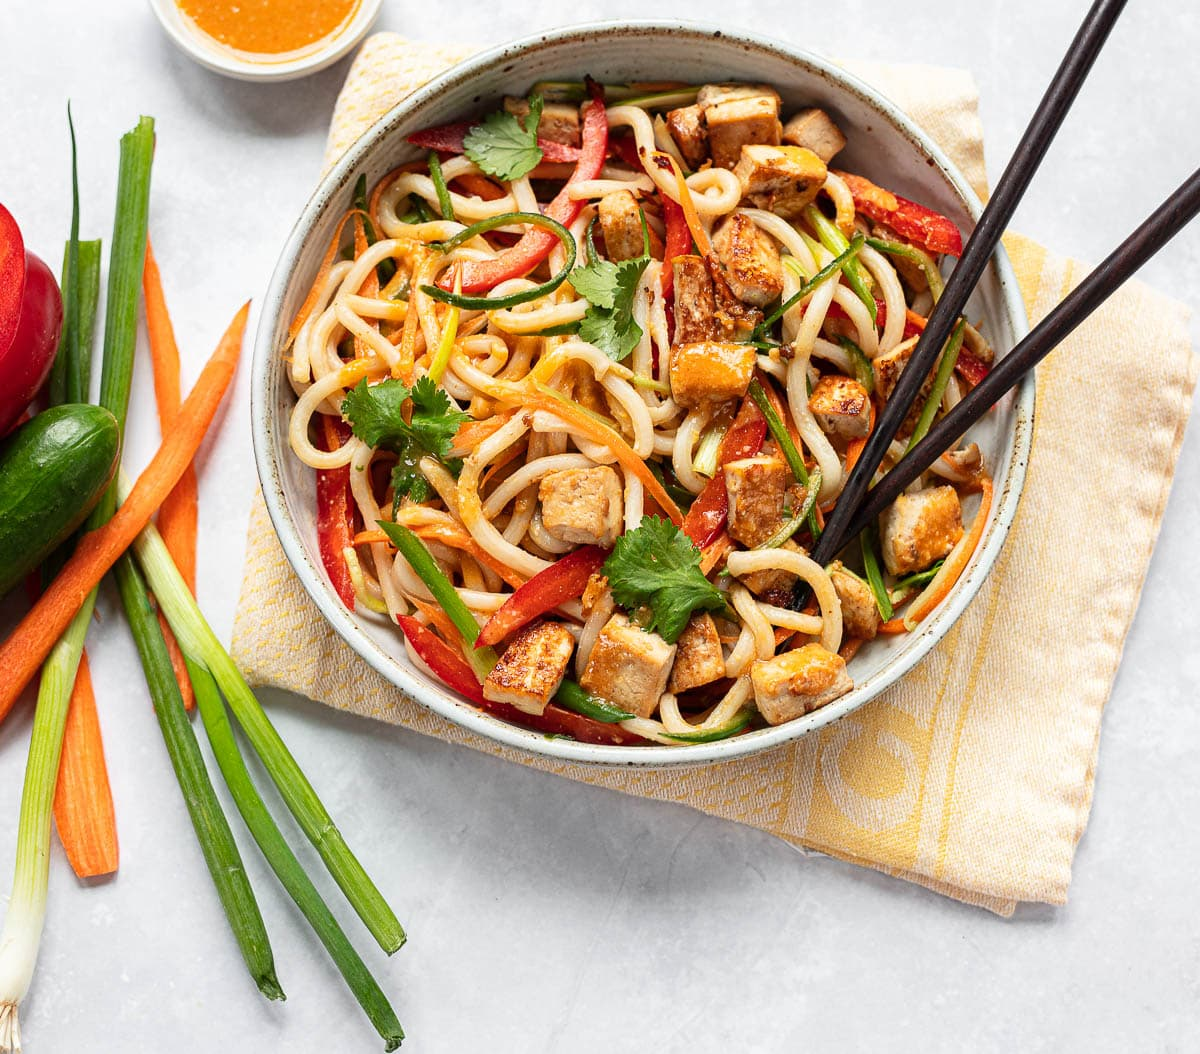 An Asian noodle bowl with chopsticks on the side, with glazed brown tofu cubes, colorful vegetables and creamy miso sauce.